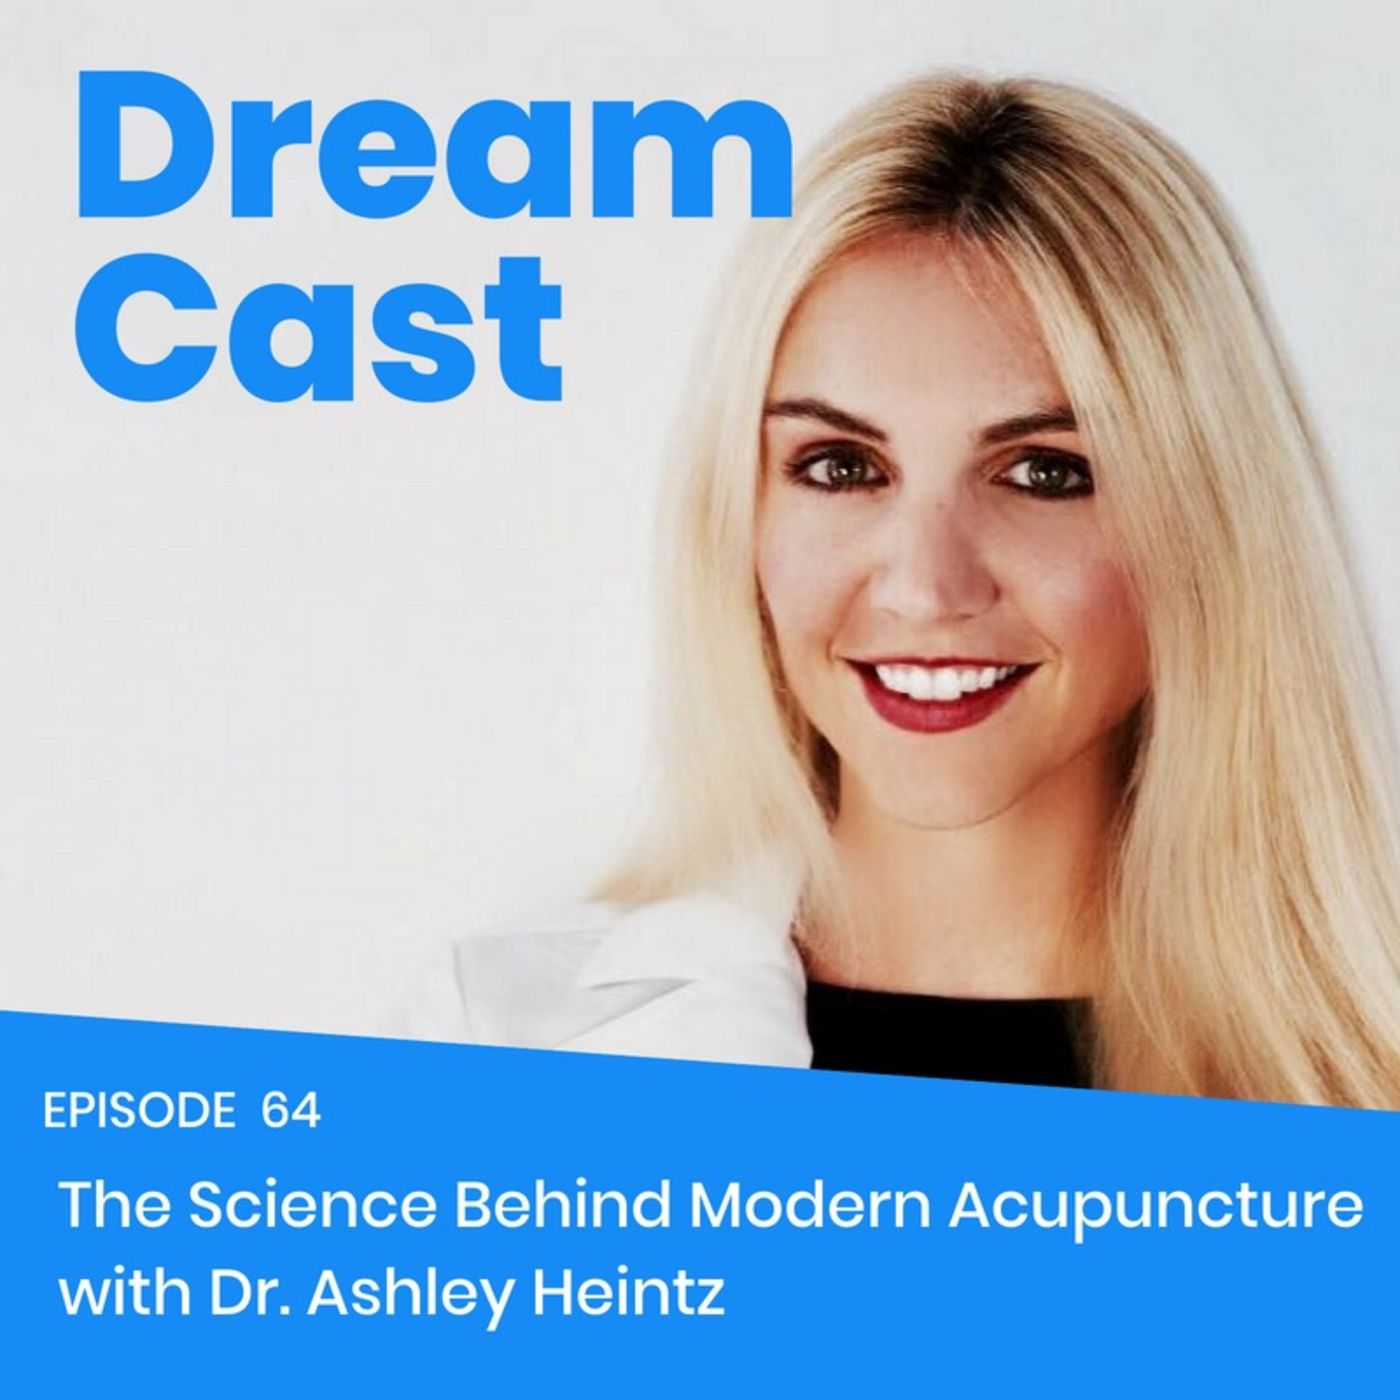 Episode 64 - The Science Behind Modern Day Acupuncture